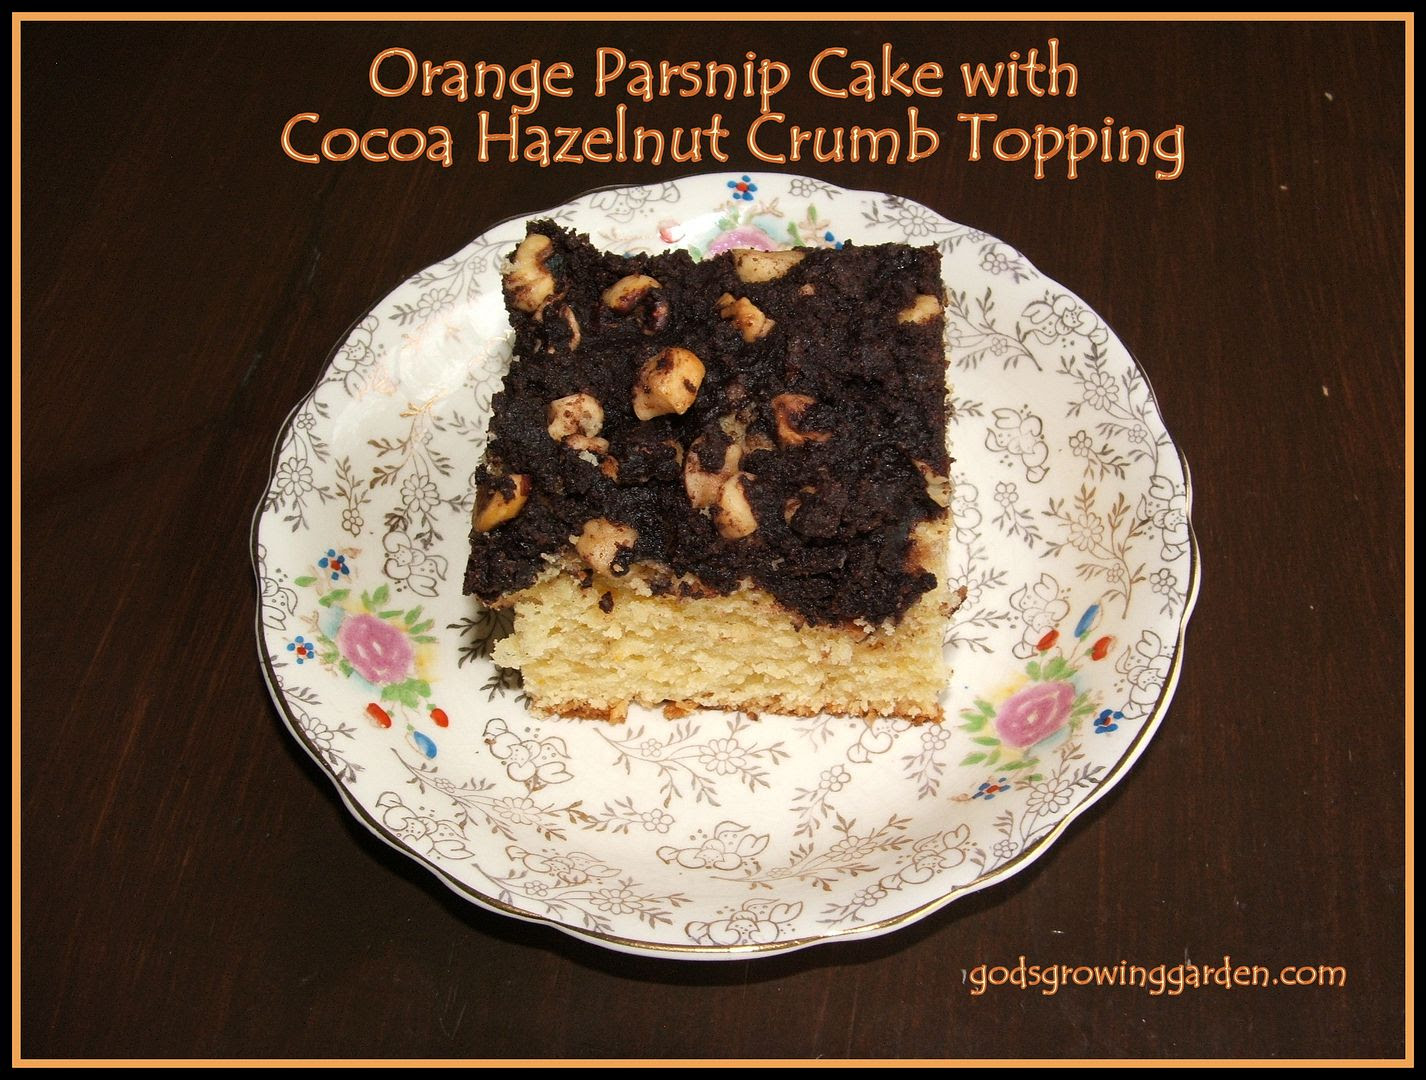 Orange Parsnip Cake by Angie Ouellette-Tower for godsgrowinggarden.com photo 011_zps6be5d91e.jpg